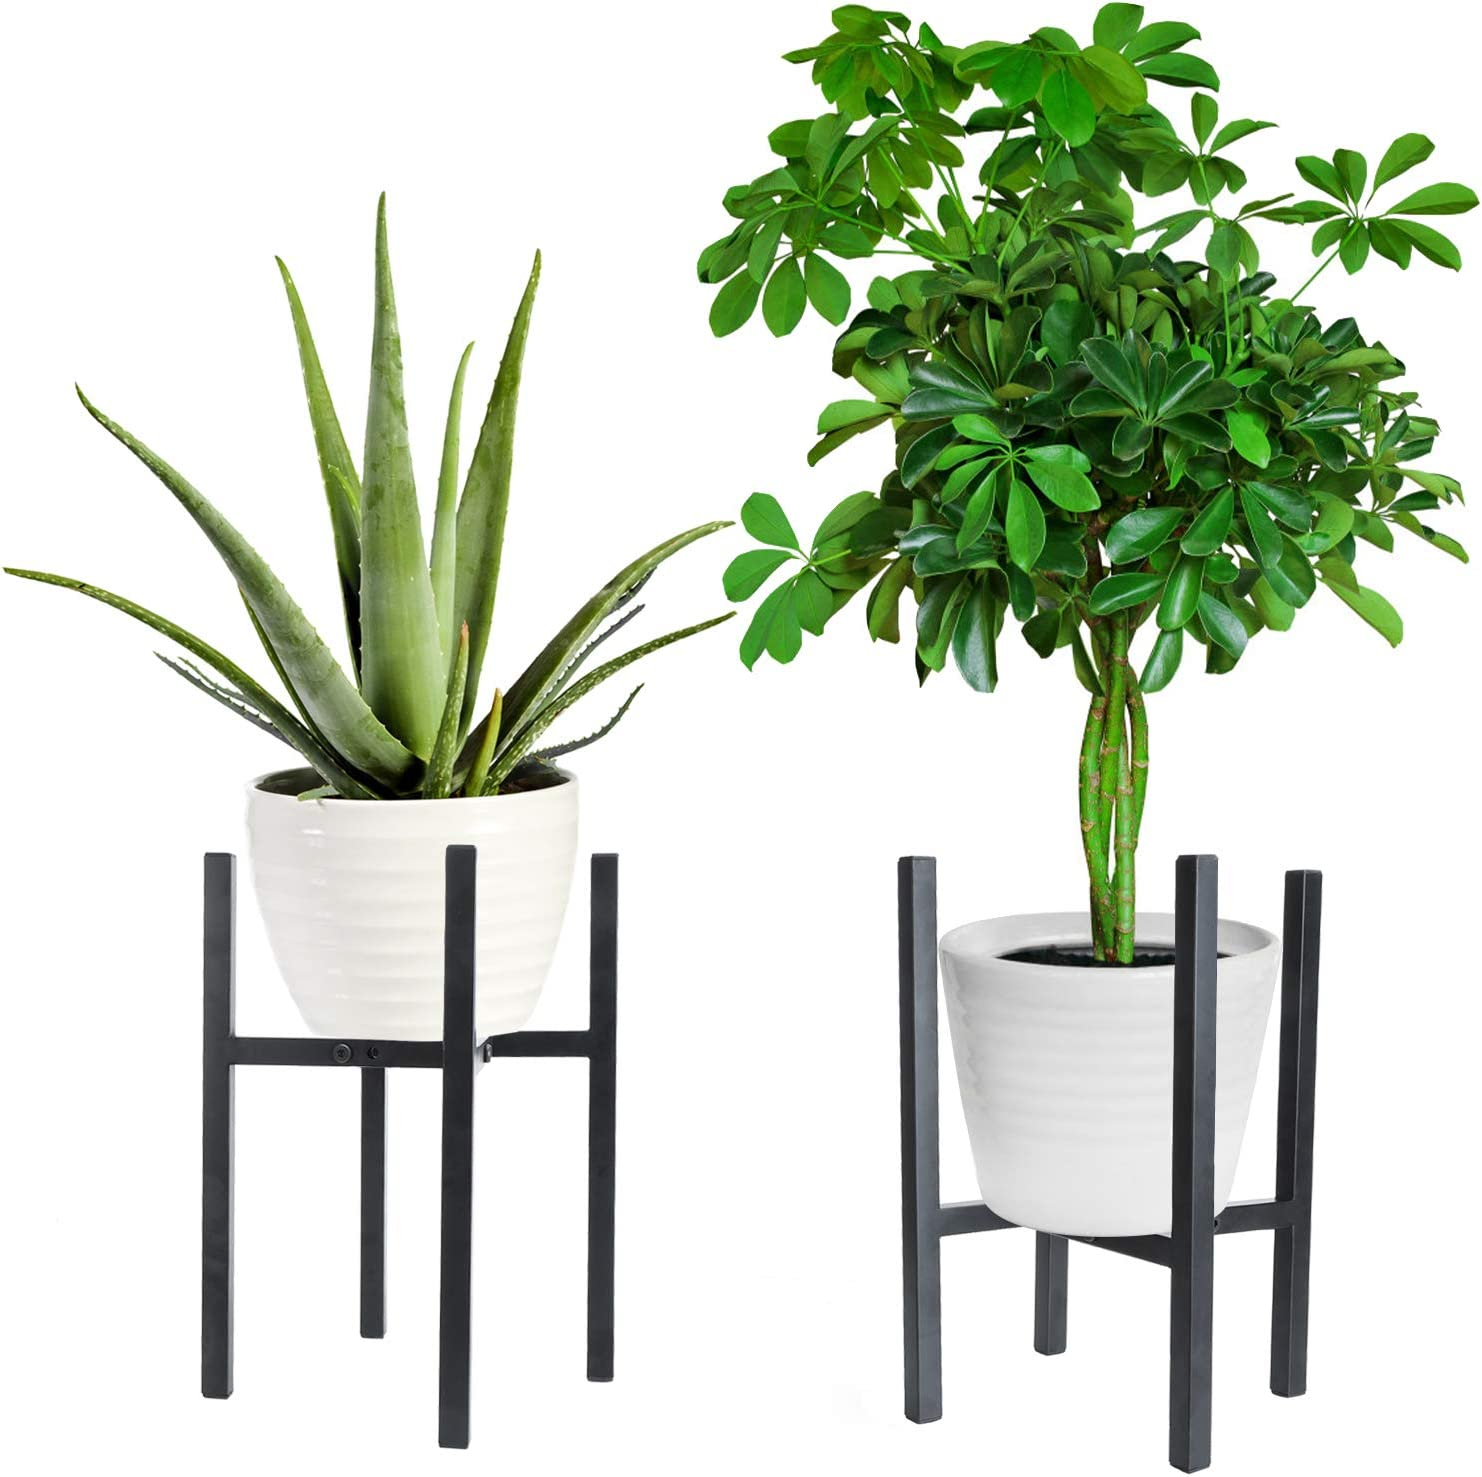 Metal Plant Stand Iron Combination for Indoor and Outdoor Garden terraces Adjustable Size Fits 7 to 10 Inches Plant Pots 2 pcs (Black)